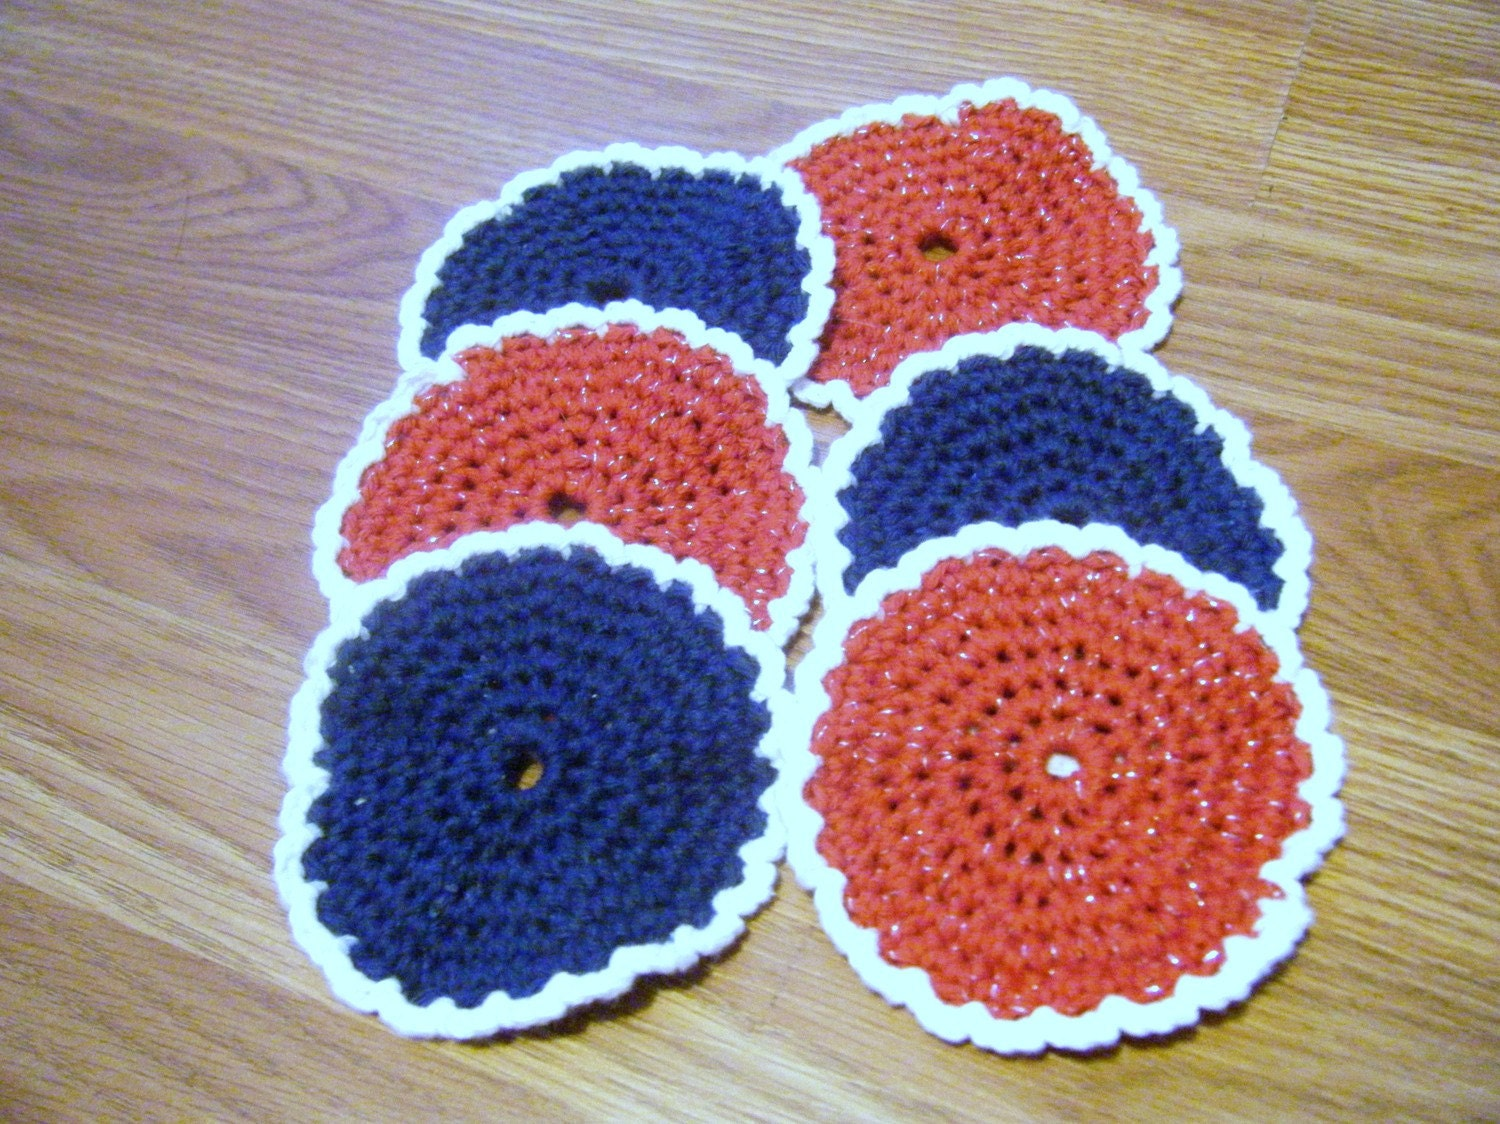 Crochet Coasters Patriotic Colors Set of 6